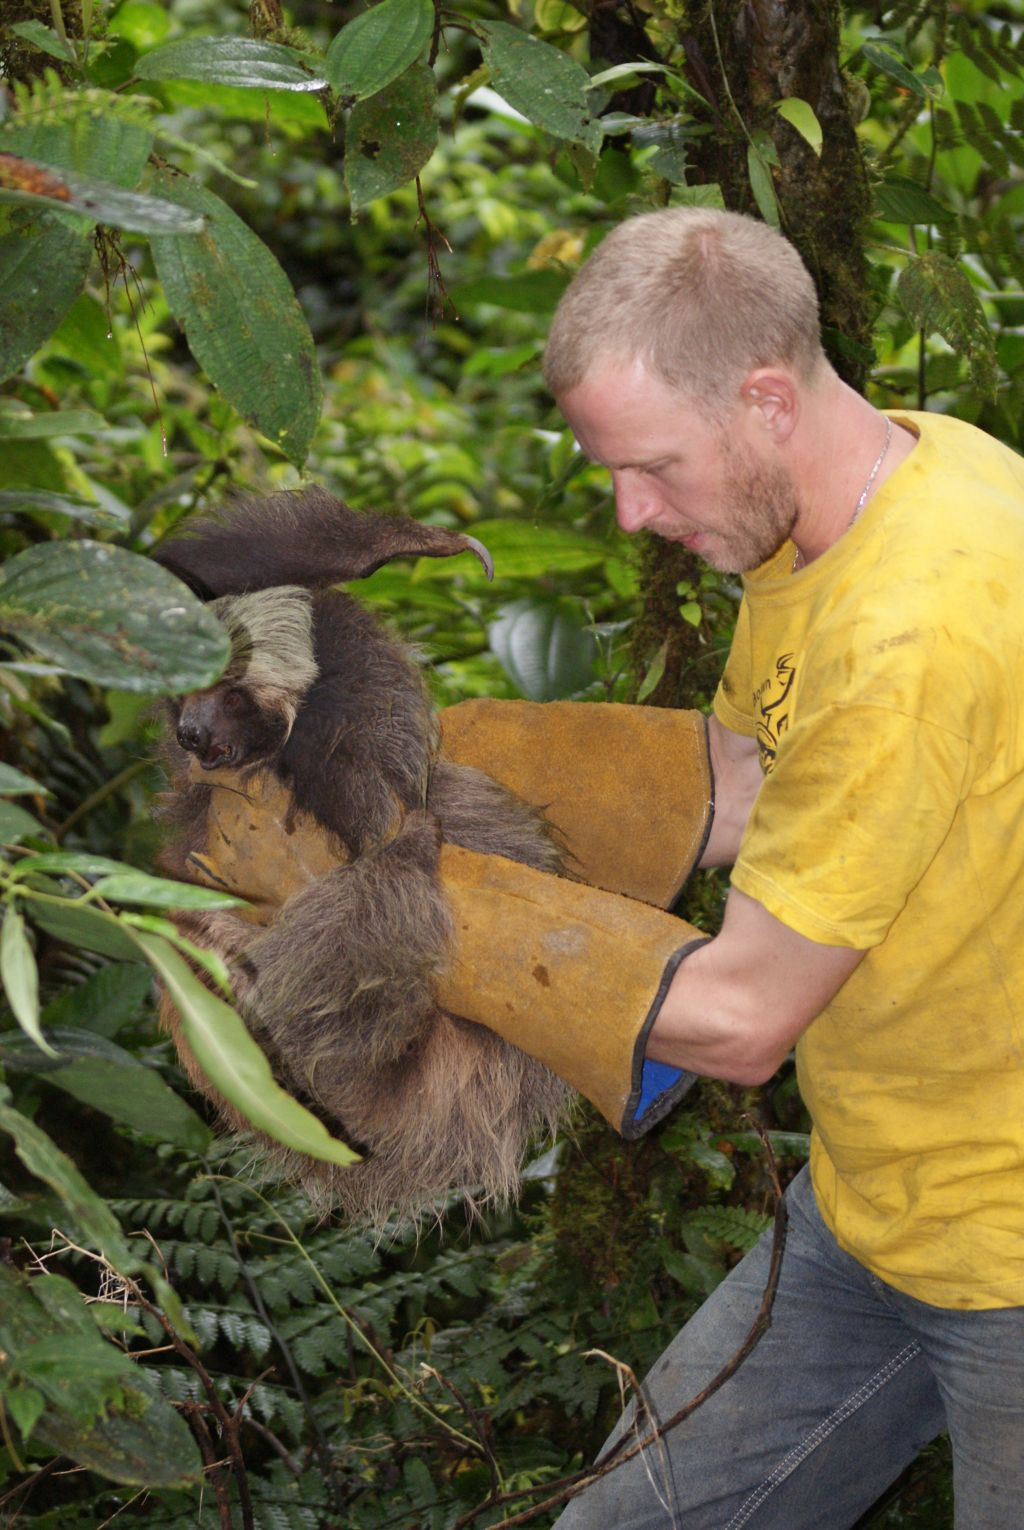 sloth-release-merazonia-amazon-tour-ecuador